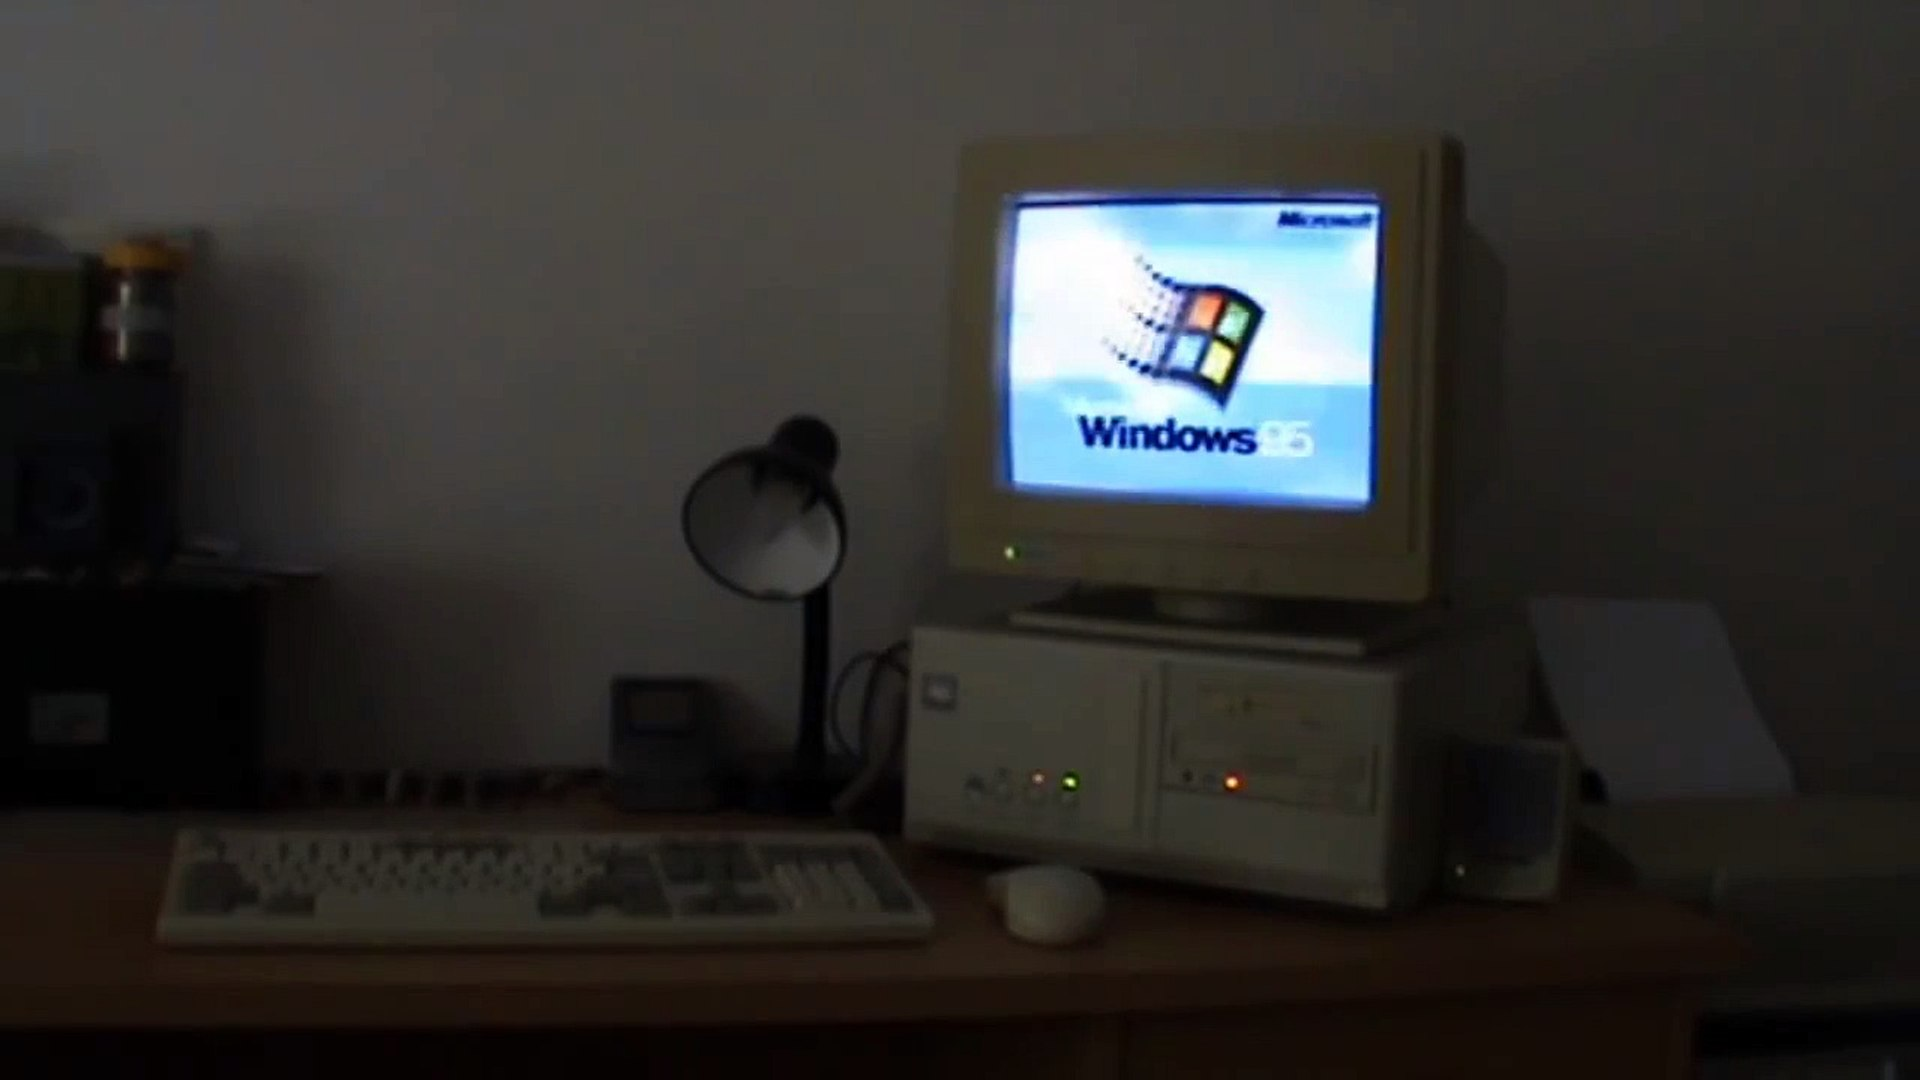 Le doux bruit d'un PC de 1992 sous Windows 95